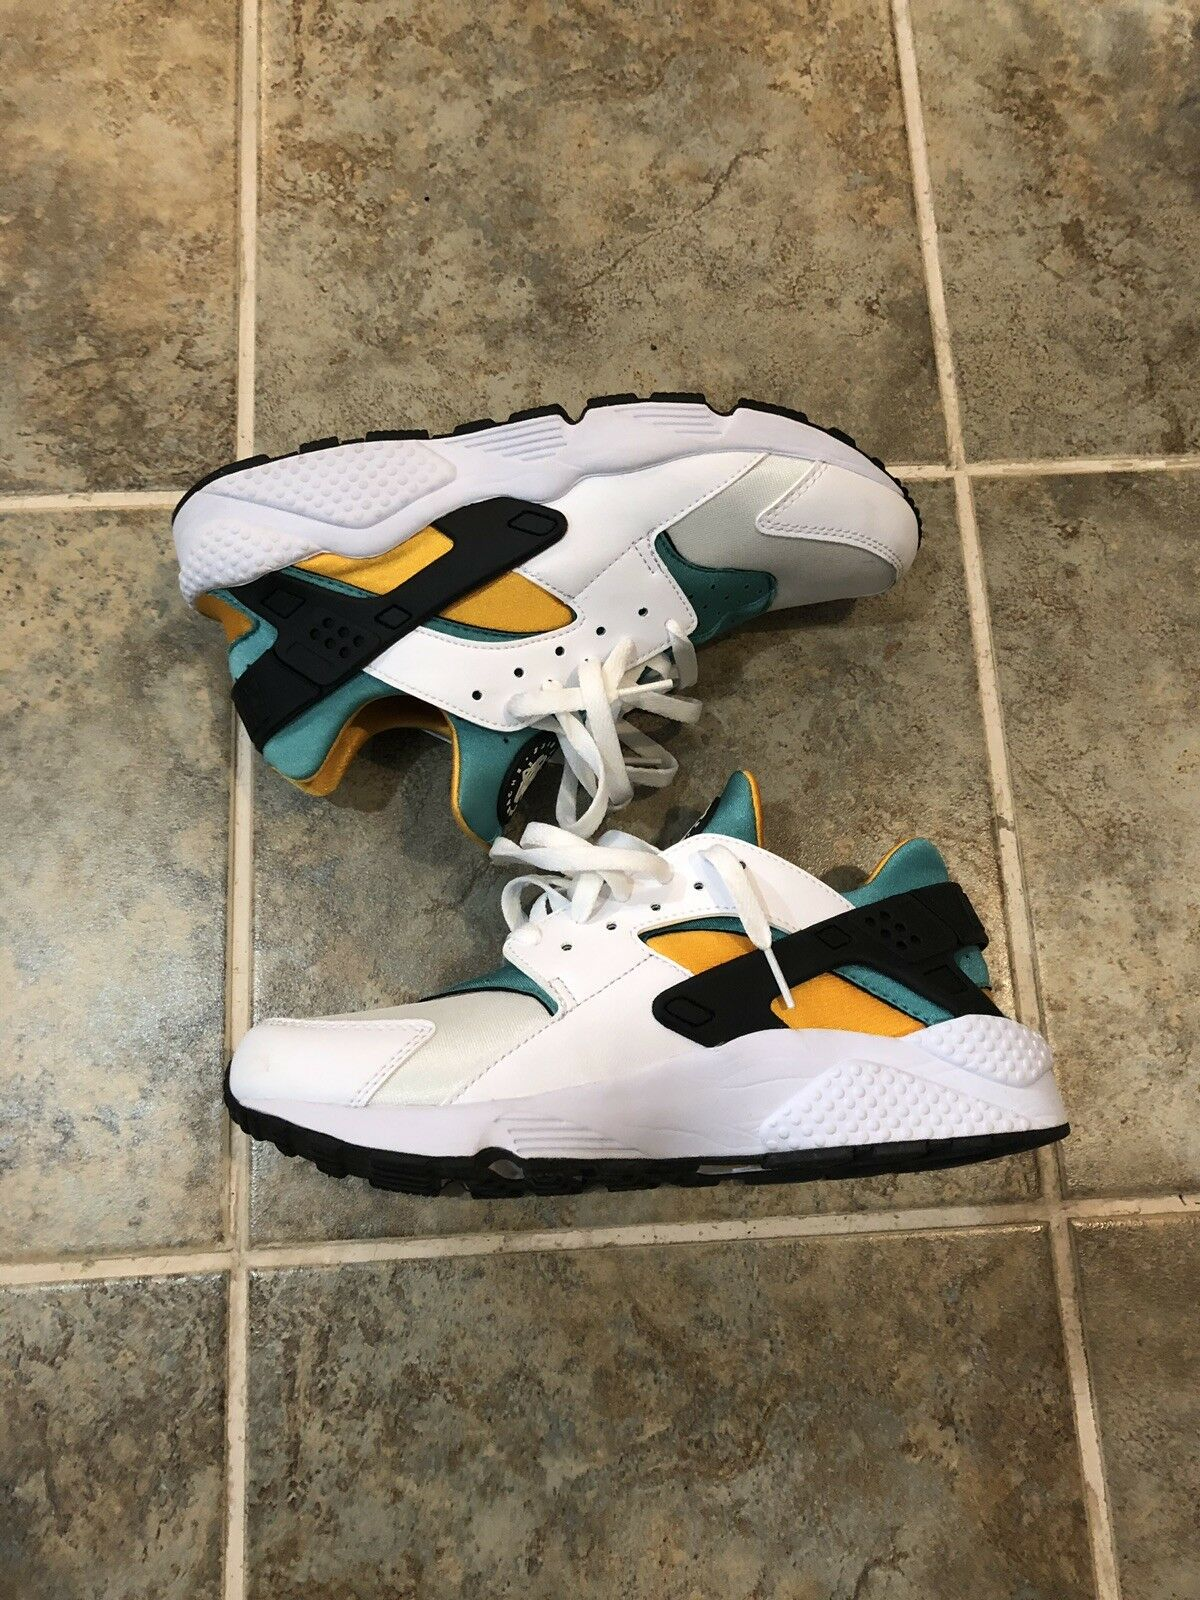 MEN'S NIKE AIR HUARACHE SHOES SIZE 9